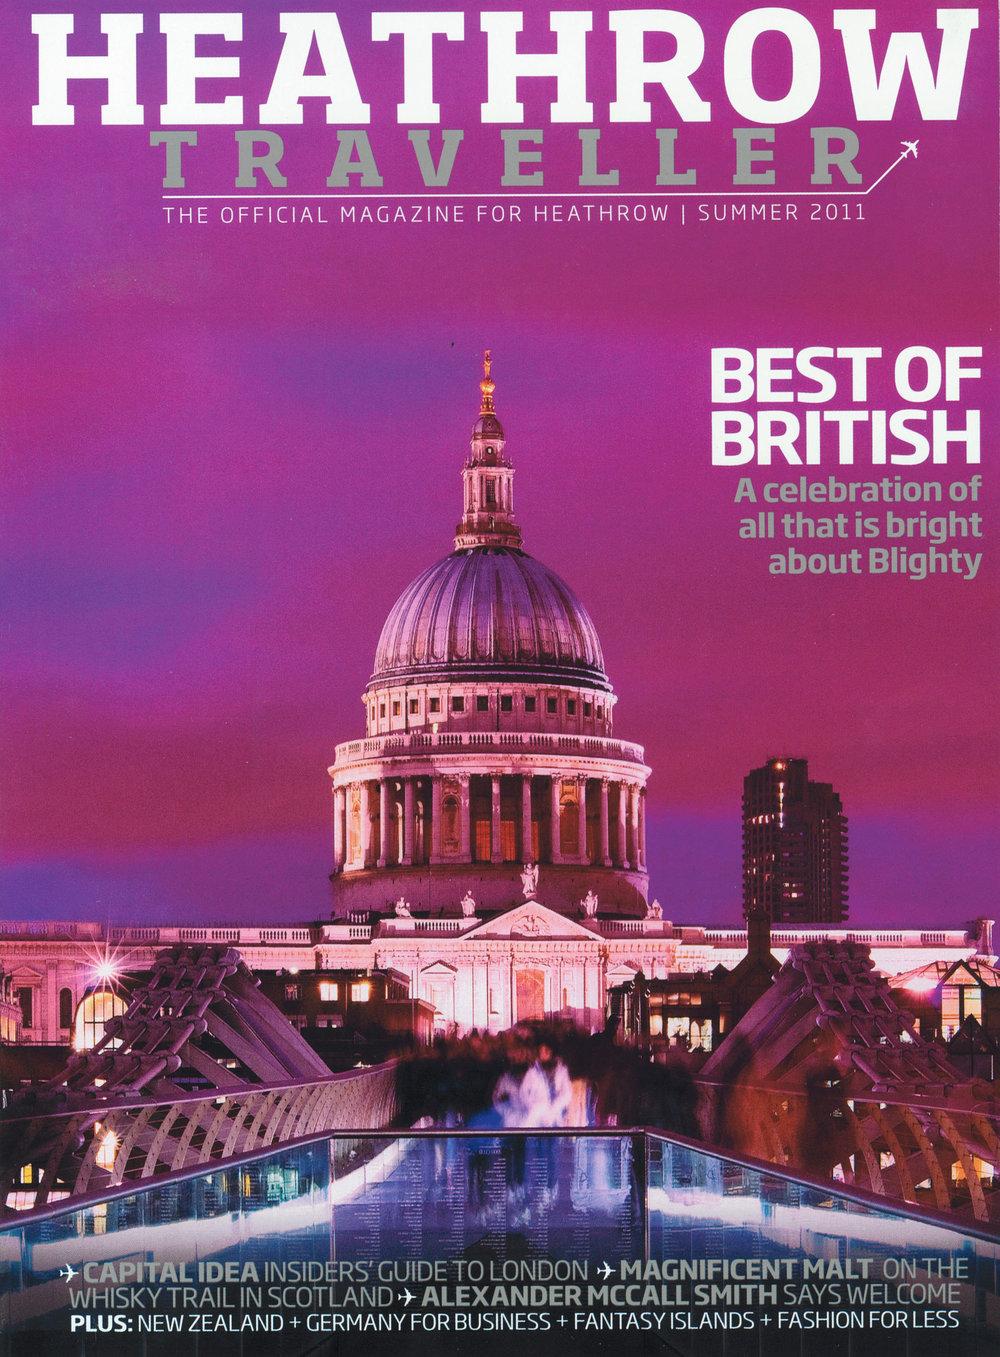 Heathrow_Traveller_summero_cover.jpg